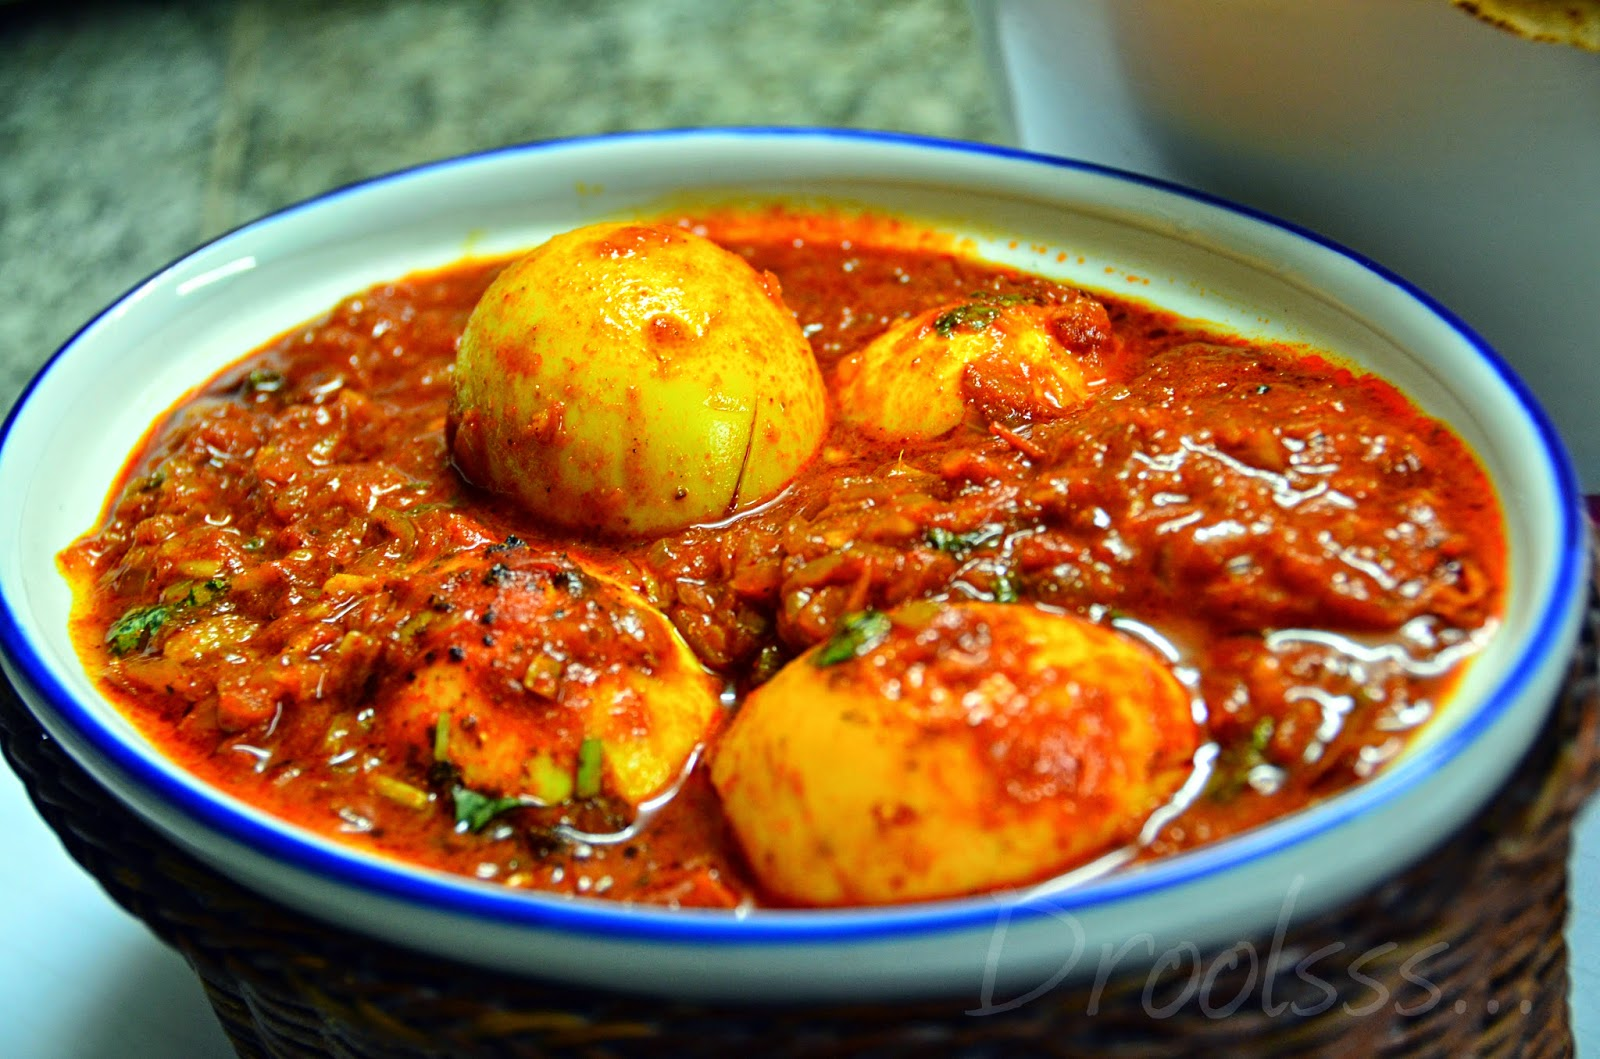 Droolsss . . .: Dim Kosha/ Spicy Egg curry - Bengali style